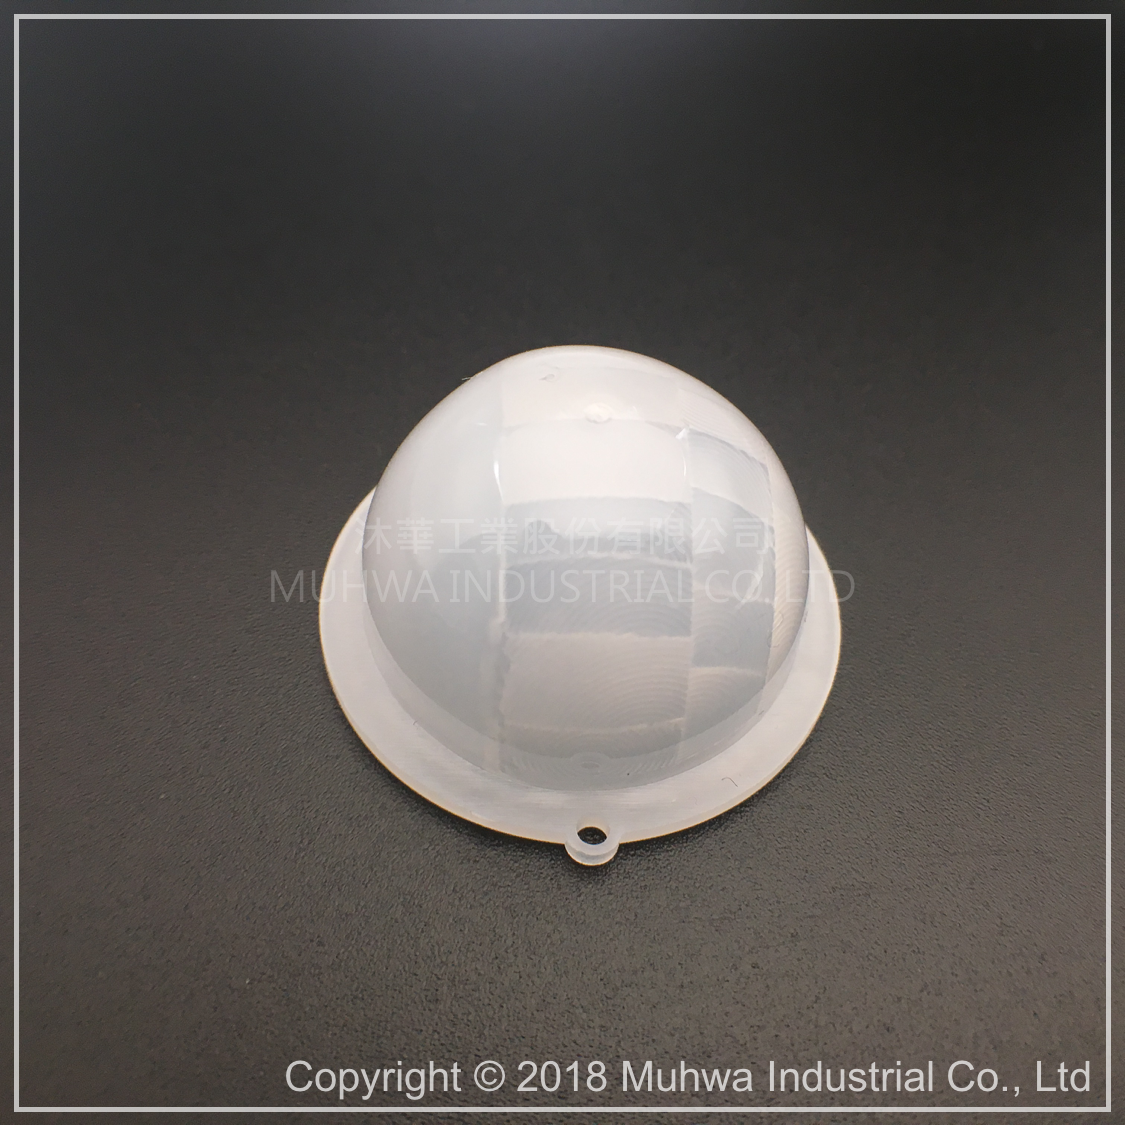 High quality Fresnel Lens Suitable For Doorbell Quotes,China Fresnel Lens Suitable For Doorbell Factory,Fresnel Lens Suitable For Doorbell Purchasing